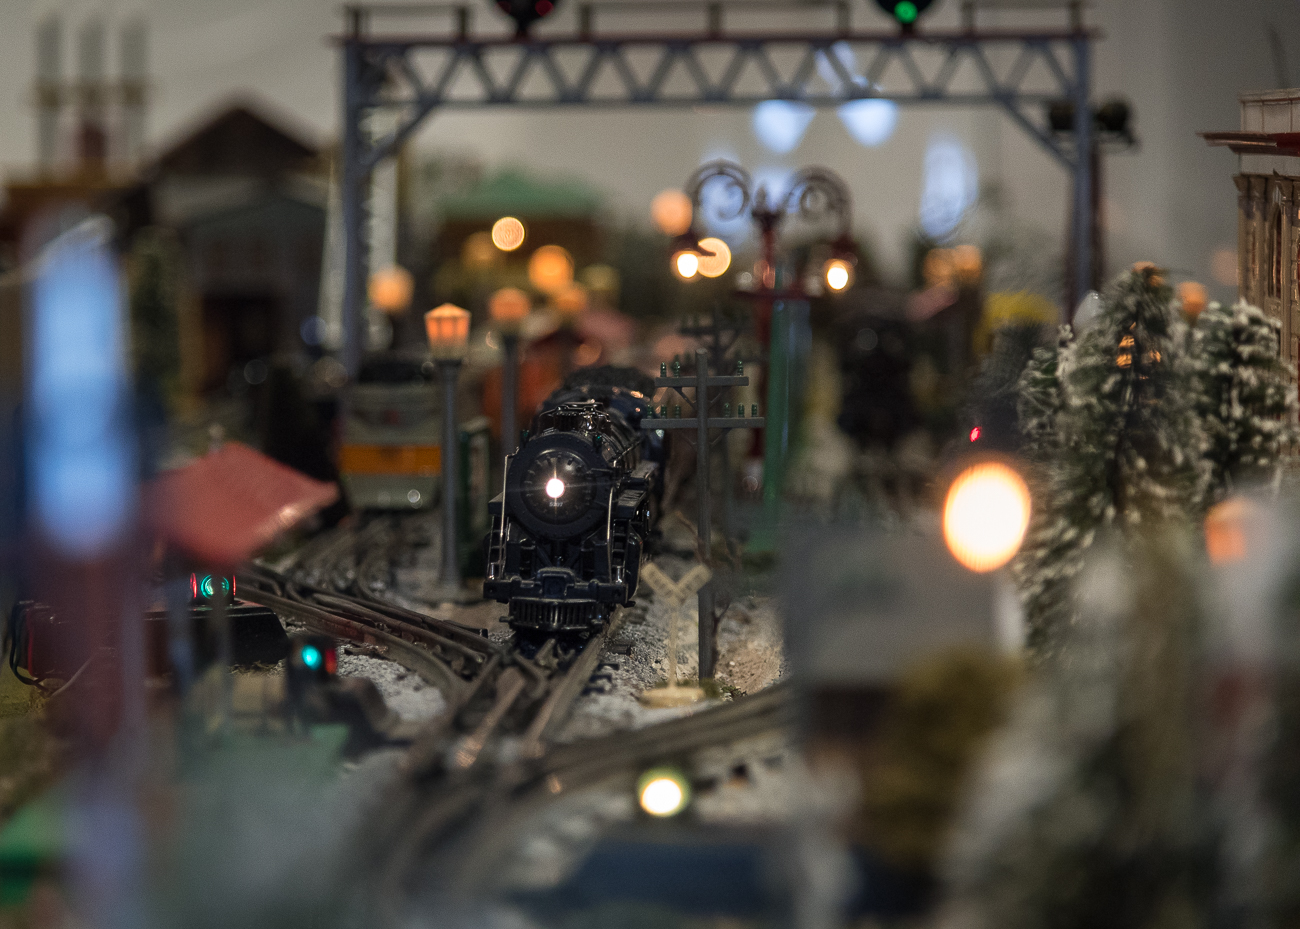 The Duke Energy Holiday Trains make their grand reappearance inside the fully-restored Cincinnati Museum Center this season. Though they weren't on display last year due to construction, the trains have been a Cincinnati tradition since 1946. More than 10 million people have enjoyed the trains since their debut over the last 72 years. The display is one of the largest portable models in the world and features 300 miniature rail cars, 60 engines, and 1,000 feet of track. / Image: Phil Armstrong, Cincinnati Refined // Published: 11.15.18